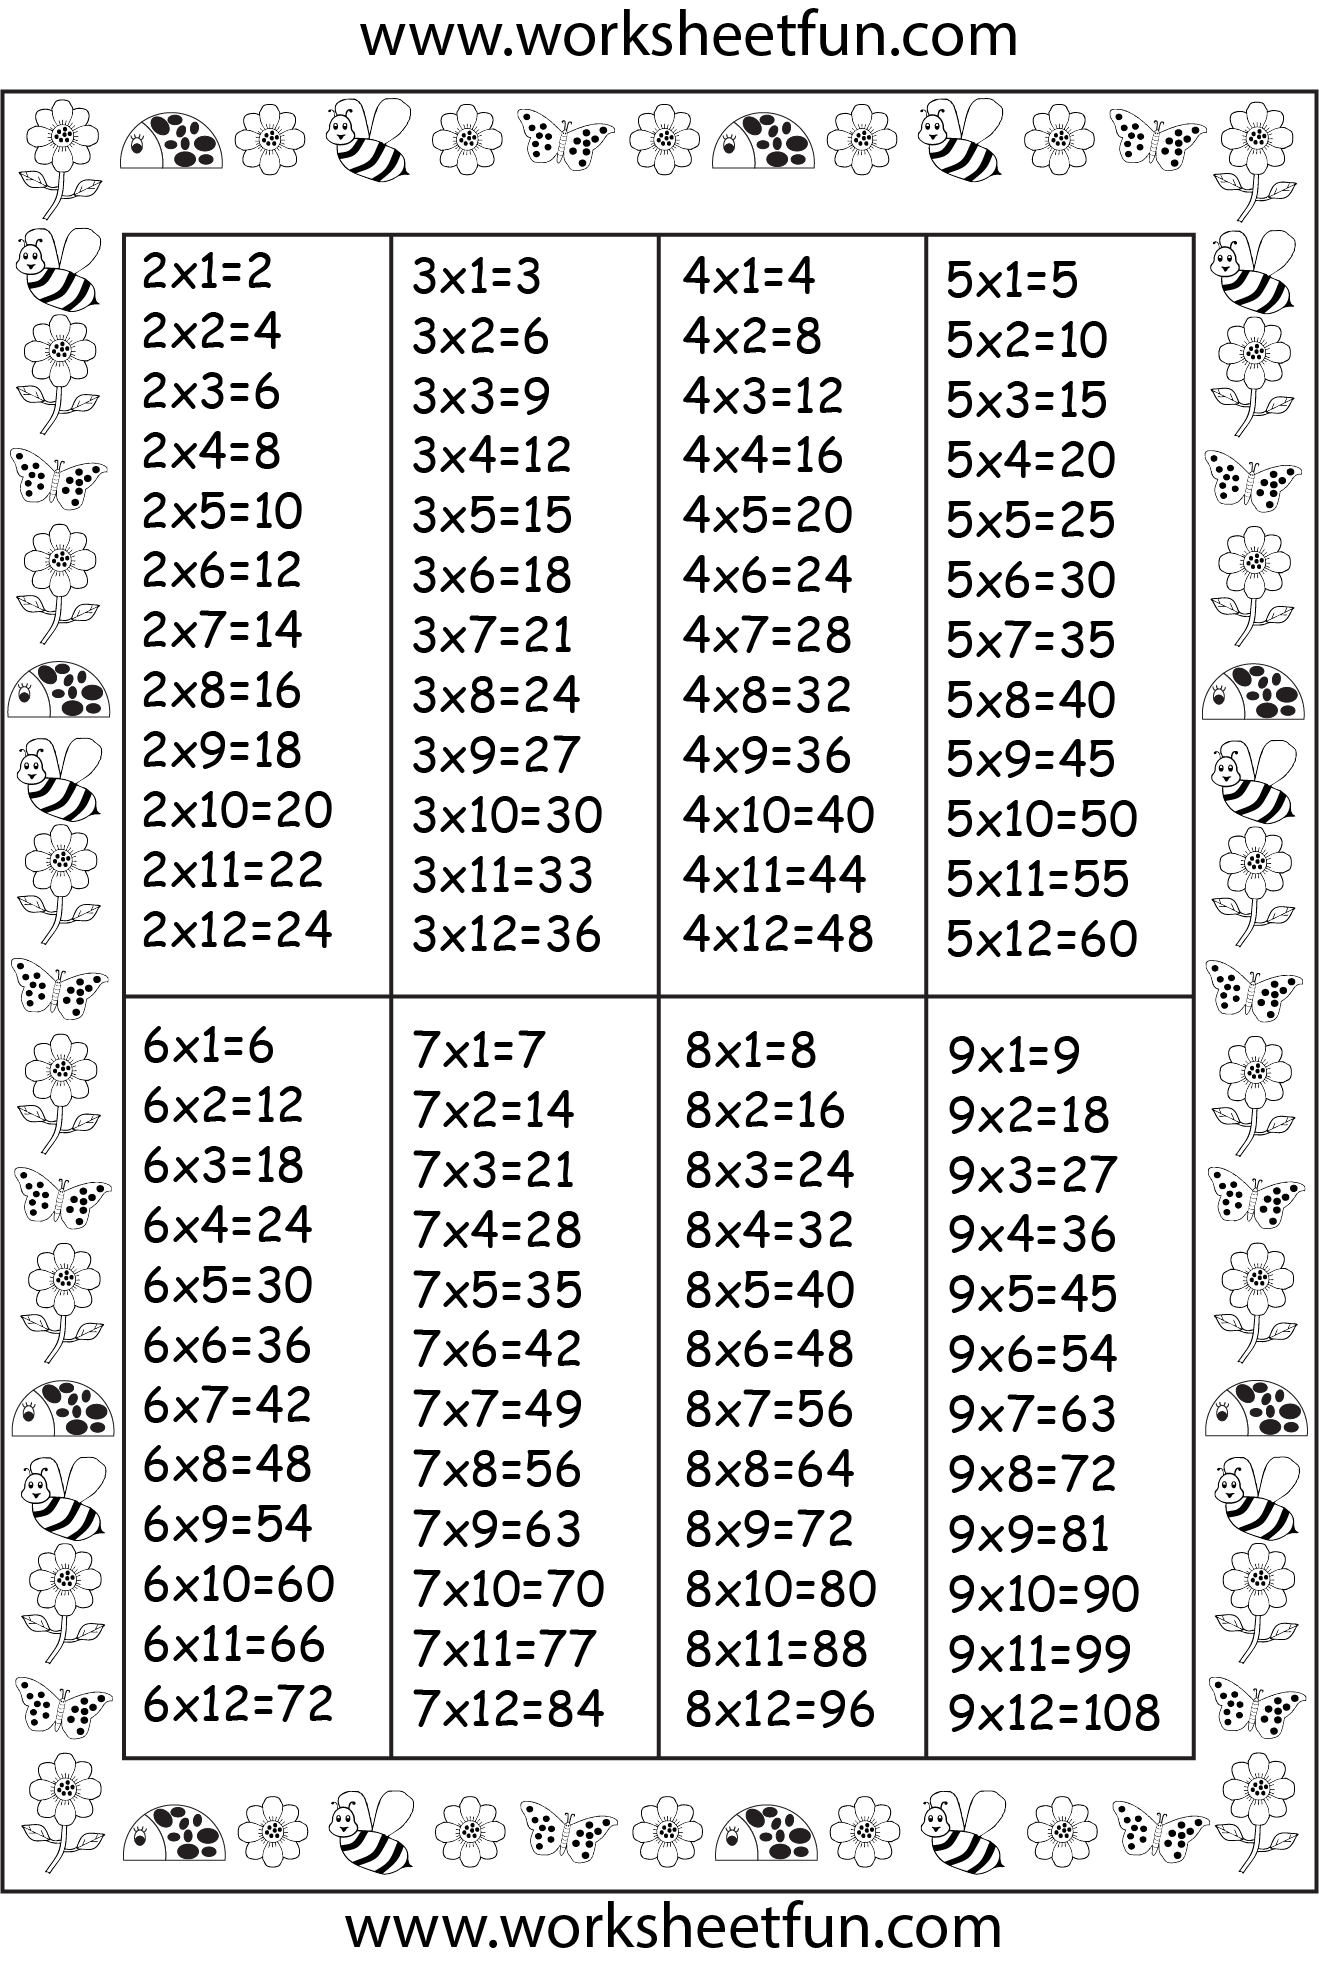 Worksheet Times Tables Printable Sheets times table printable work calendar large multiplication charts tables chart worksheets pinterest charts